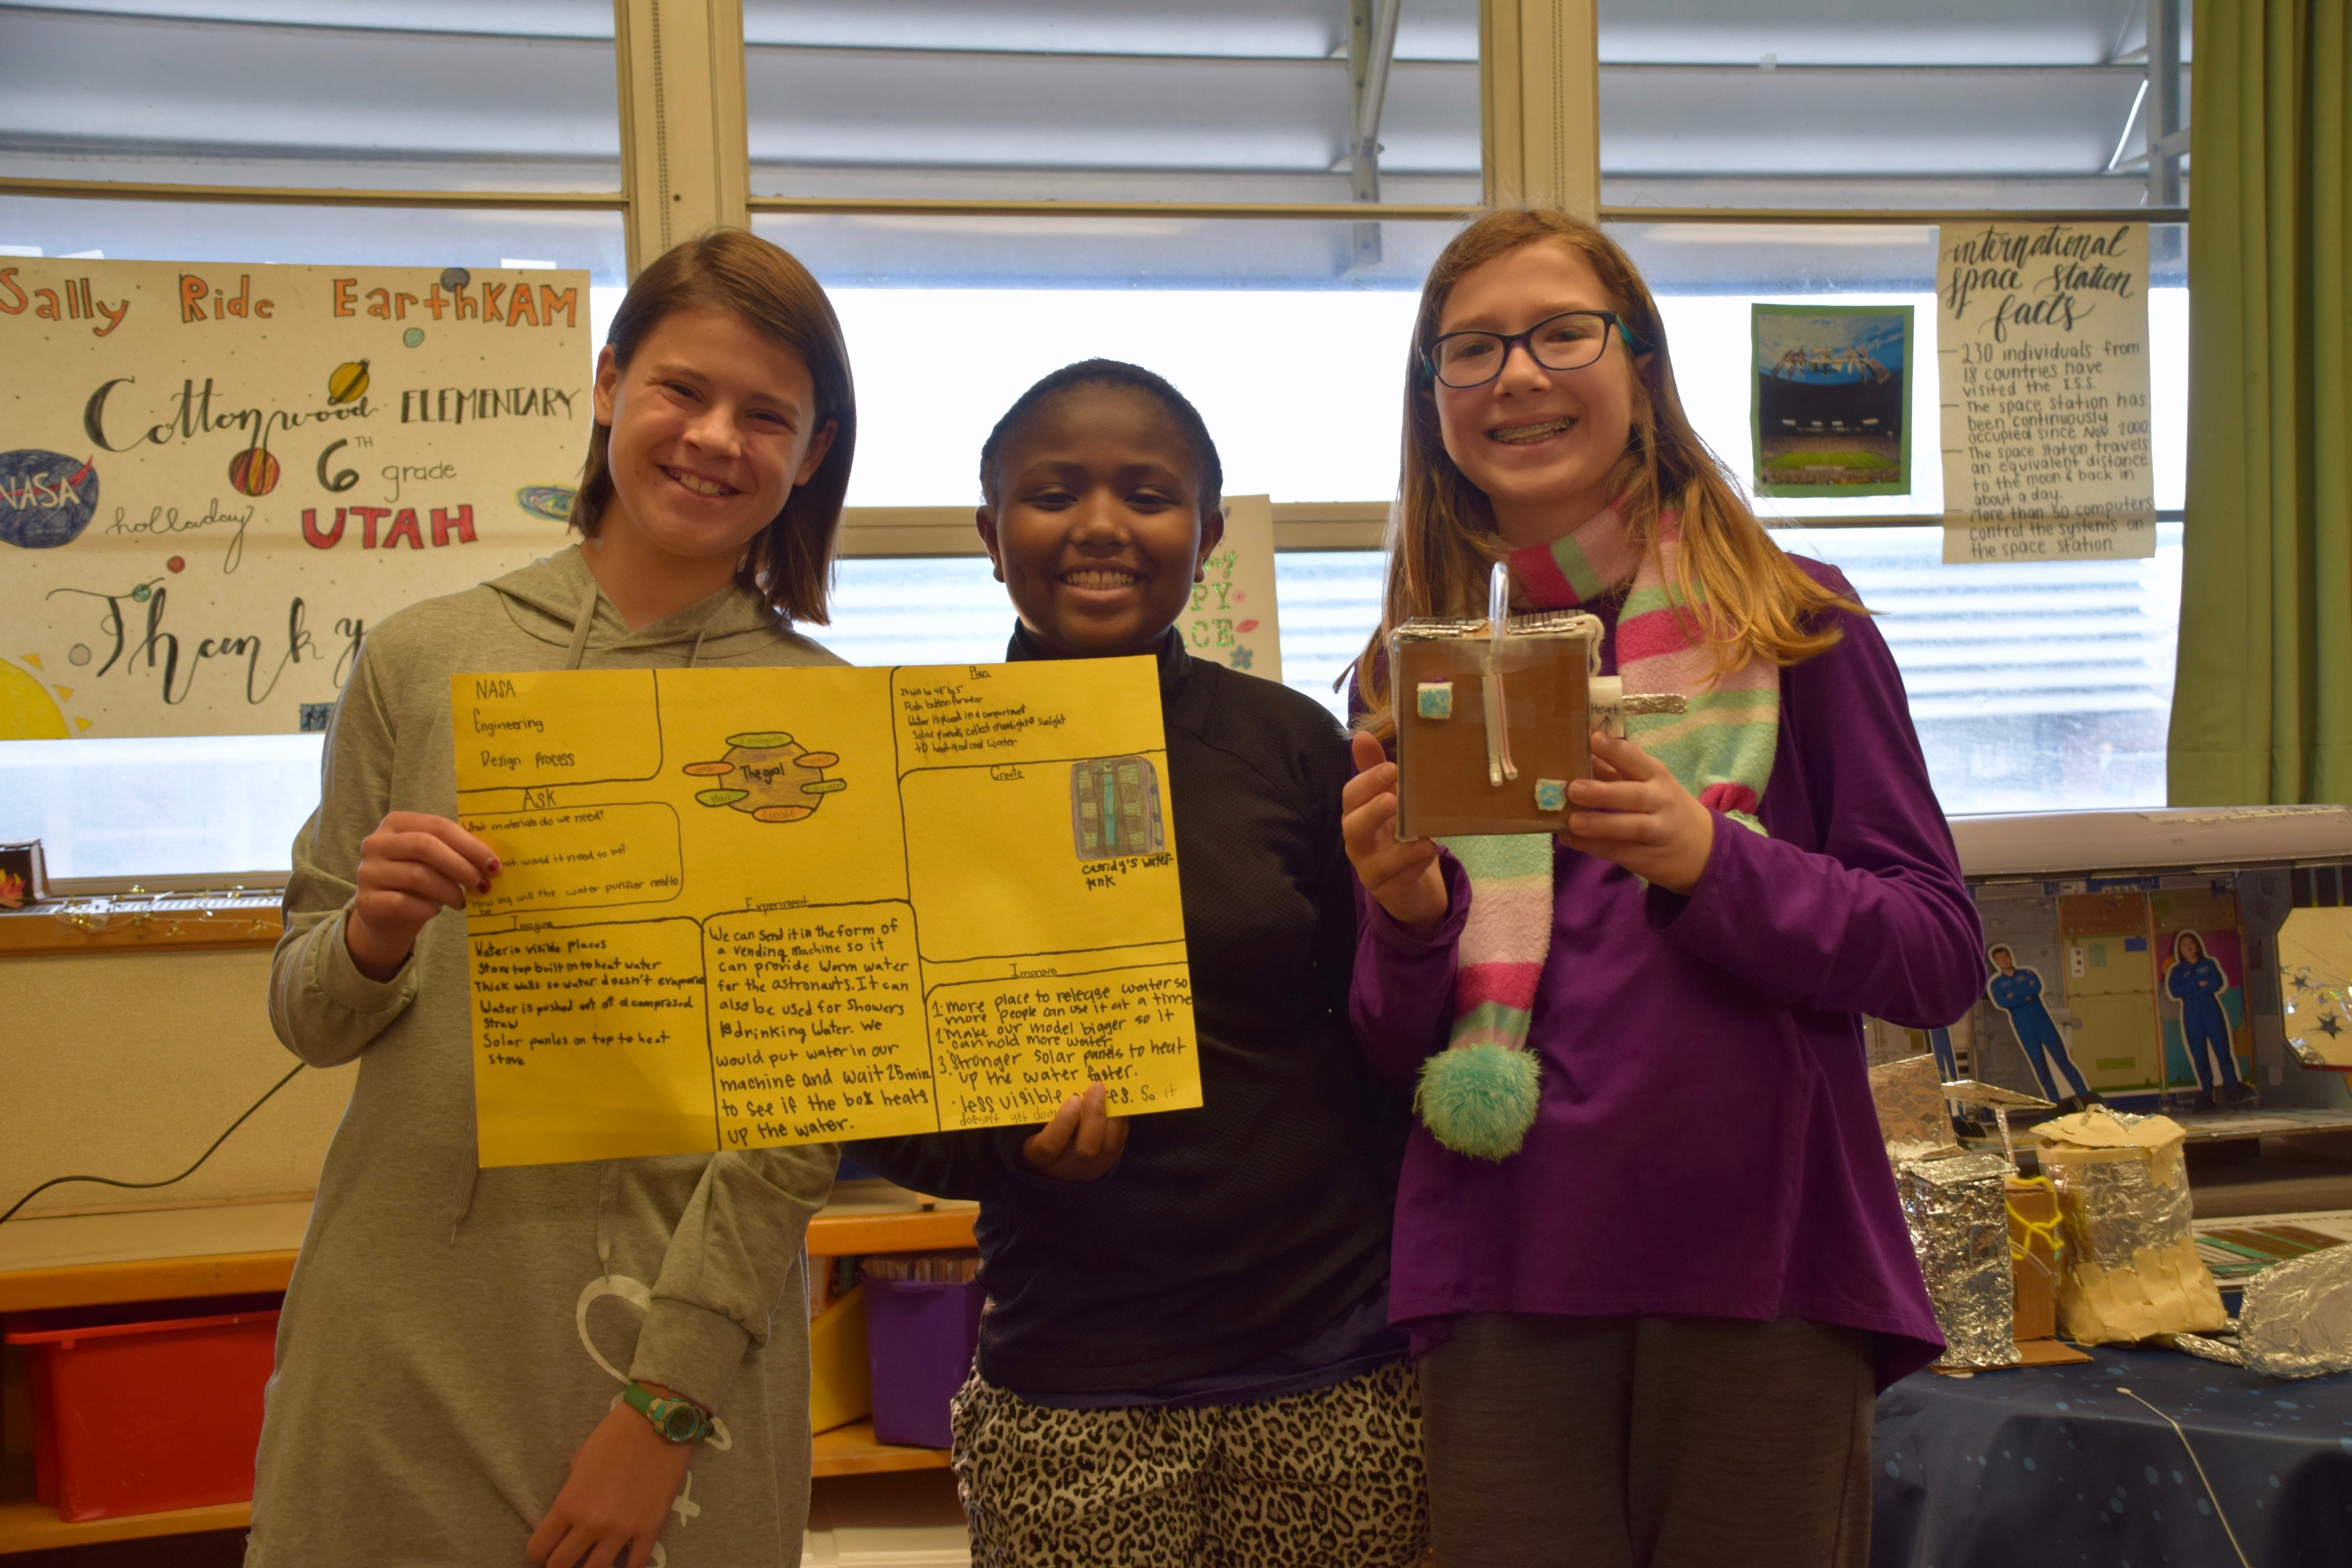 Cottonwood Elementary students holding their science projects